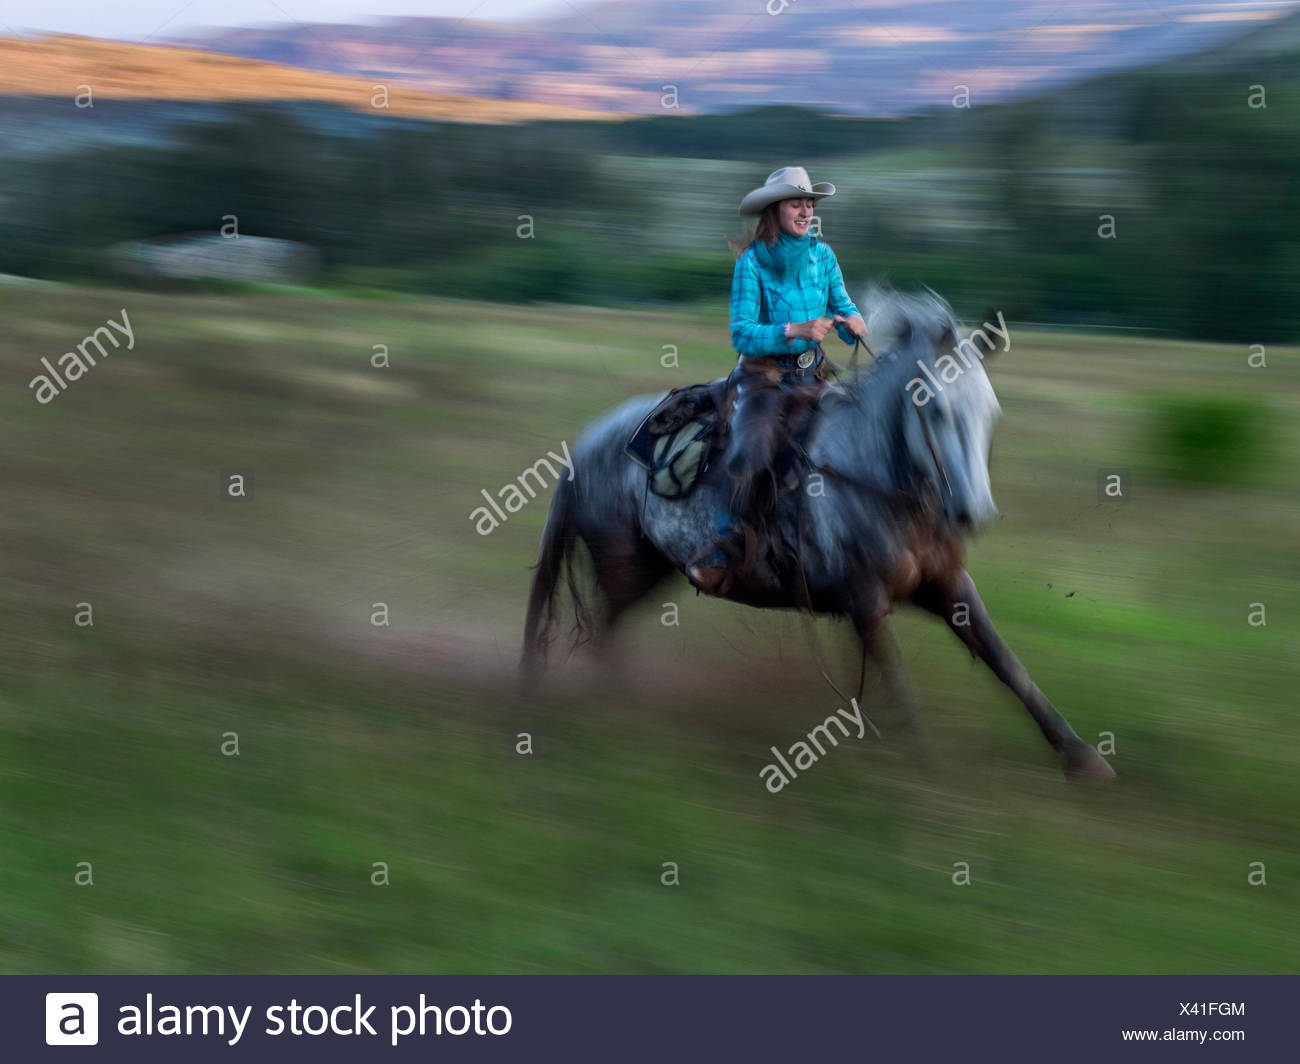 A cowgirl riding horse at the CM Ranch. - Stock Image